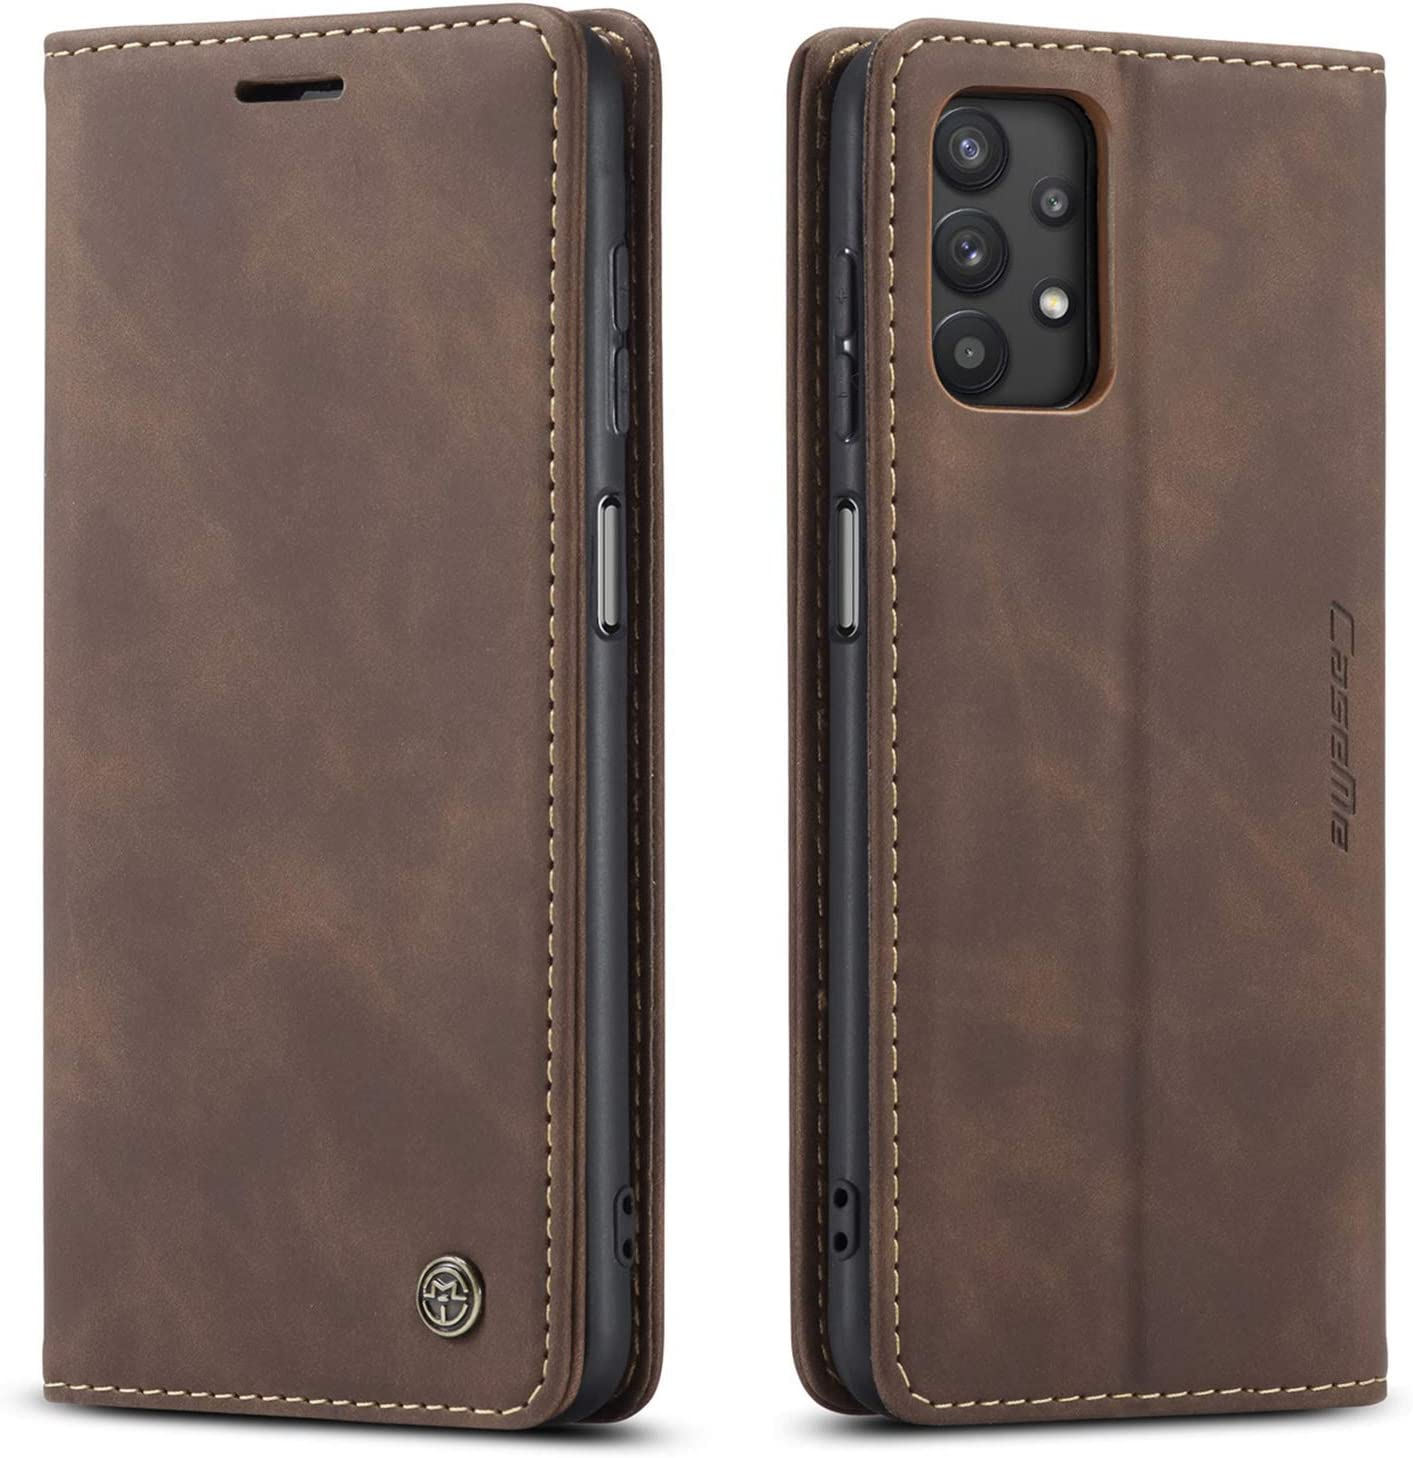 Kowauri Flip Case for Galaxy A32 5G [NOT Compatible with Galaxy A32 4G],Leather Wallet Case Classic Design with Card Slot and Magnetic Closure Flip Fold Case for Samsung Galaxy A32 5G (Coffee)